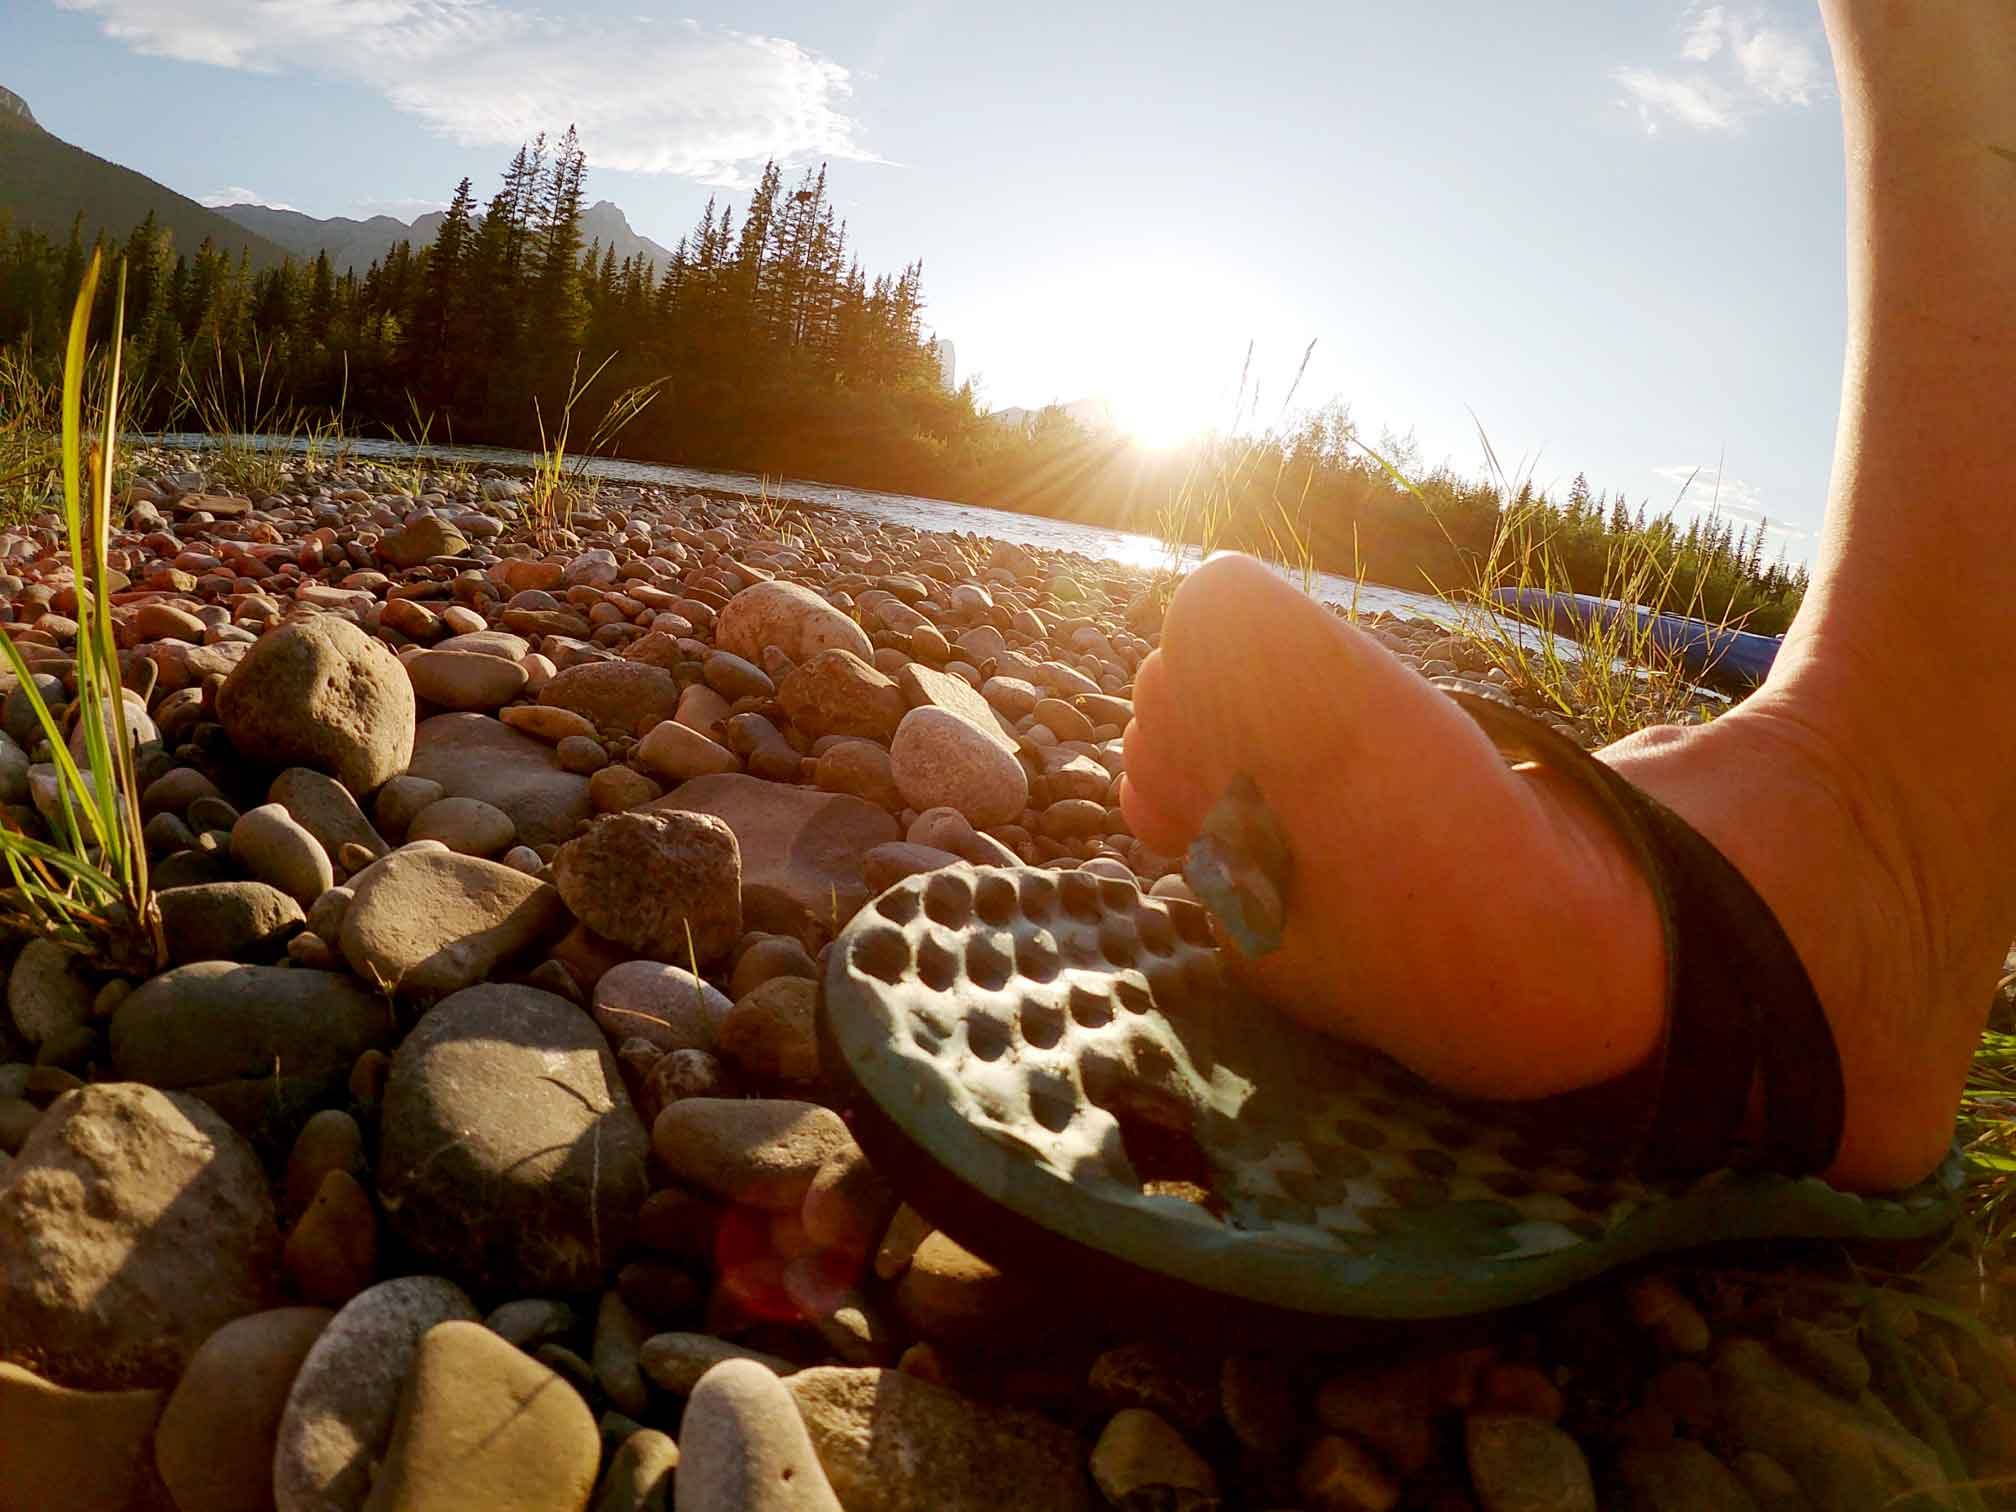 A broken flip flop on the rocks after a portage canoeing in Canmore during an evening paddle from Canmore to Exshaw